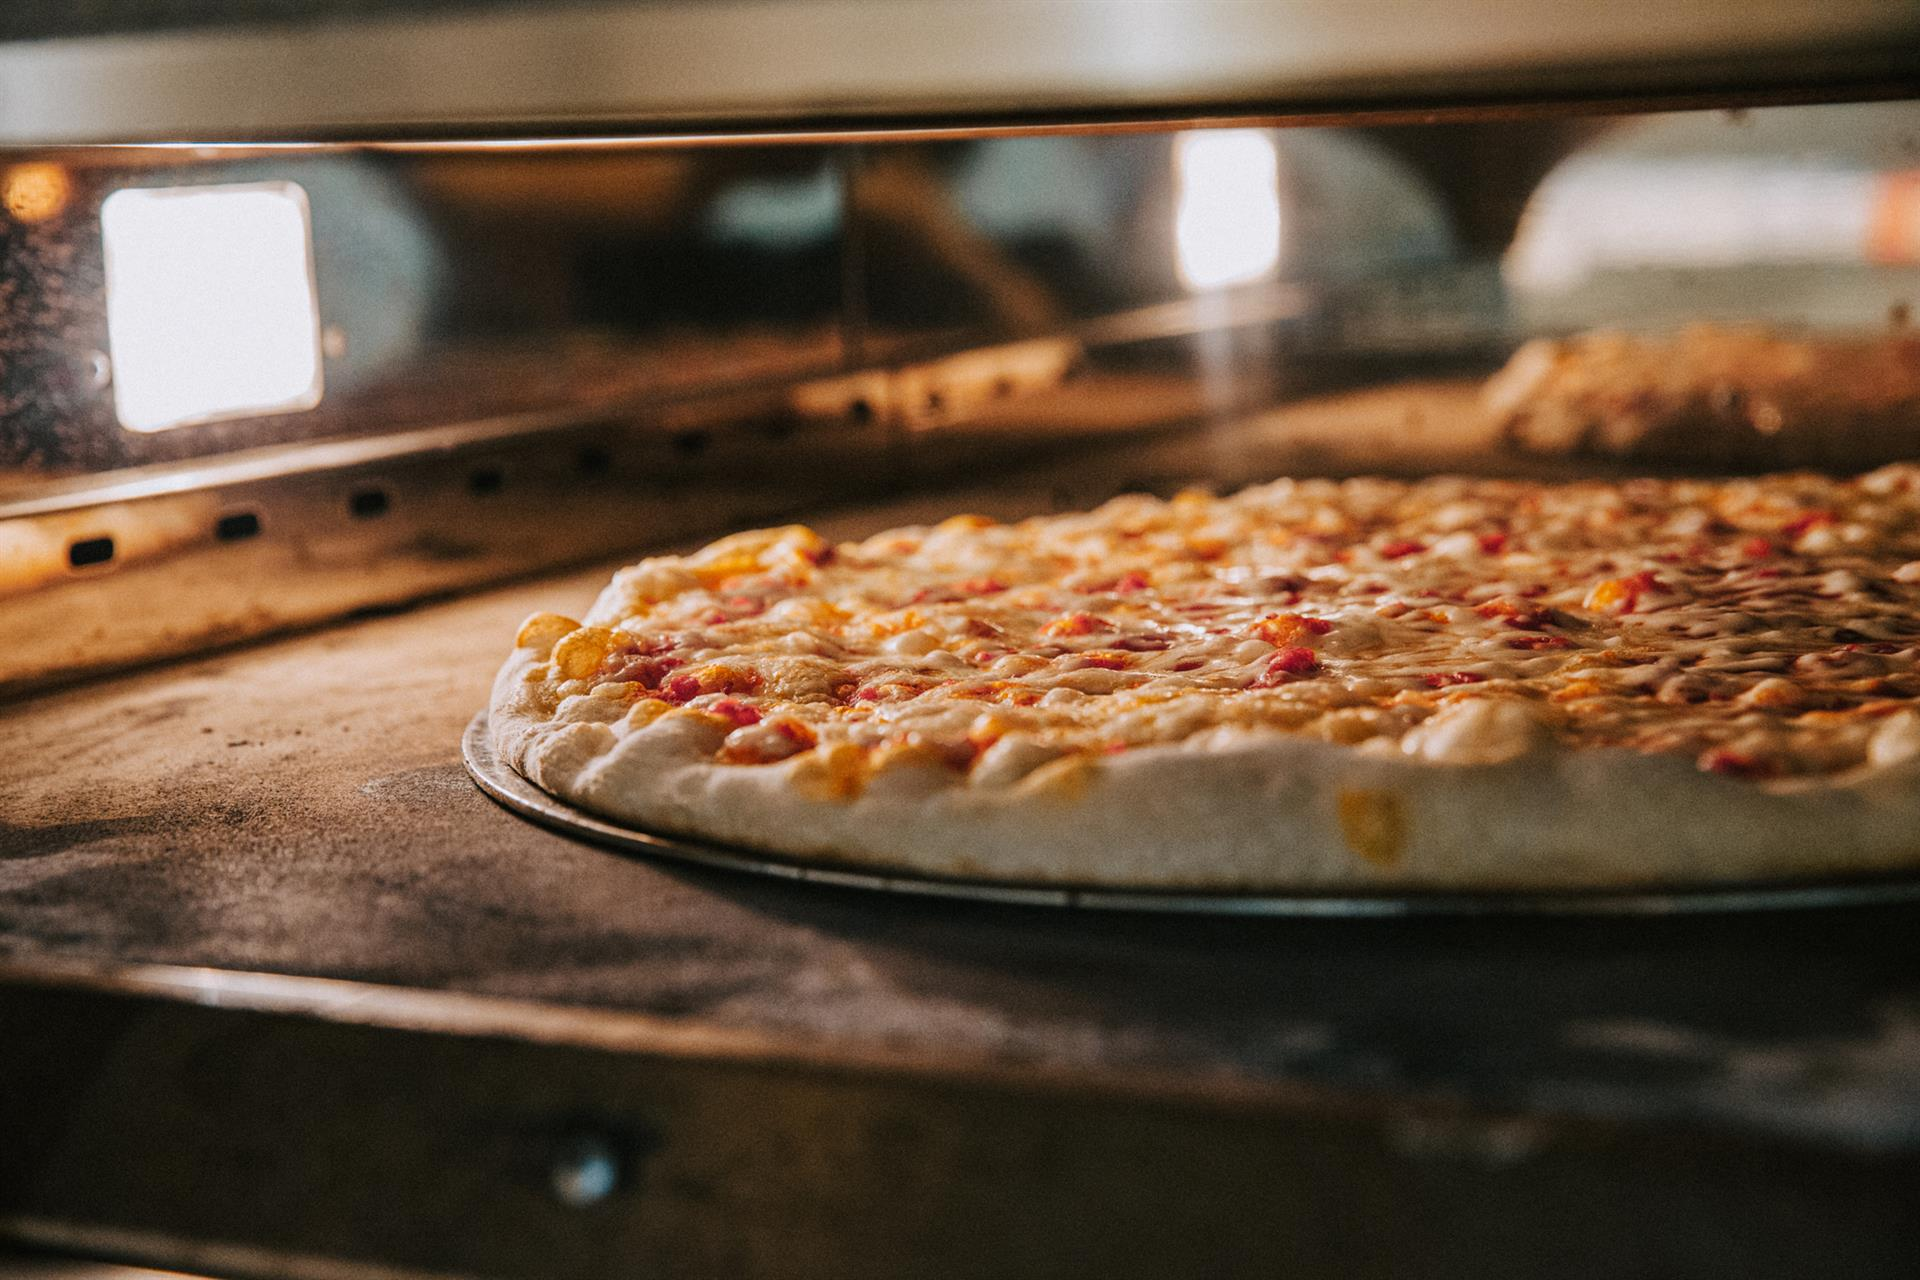 cheese pizza cooking in the oven